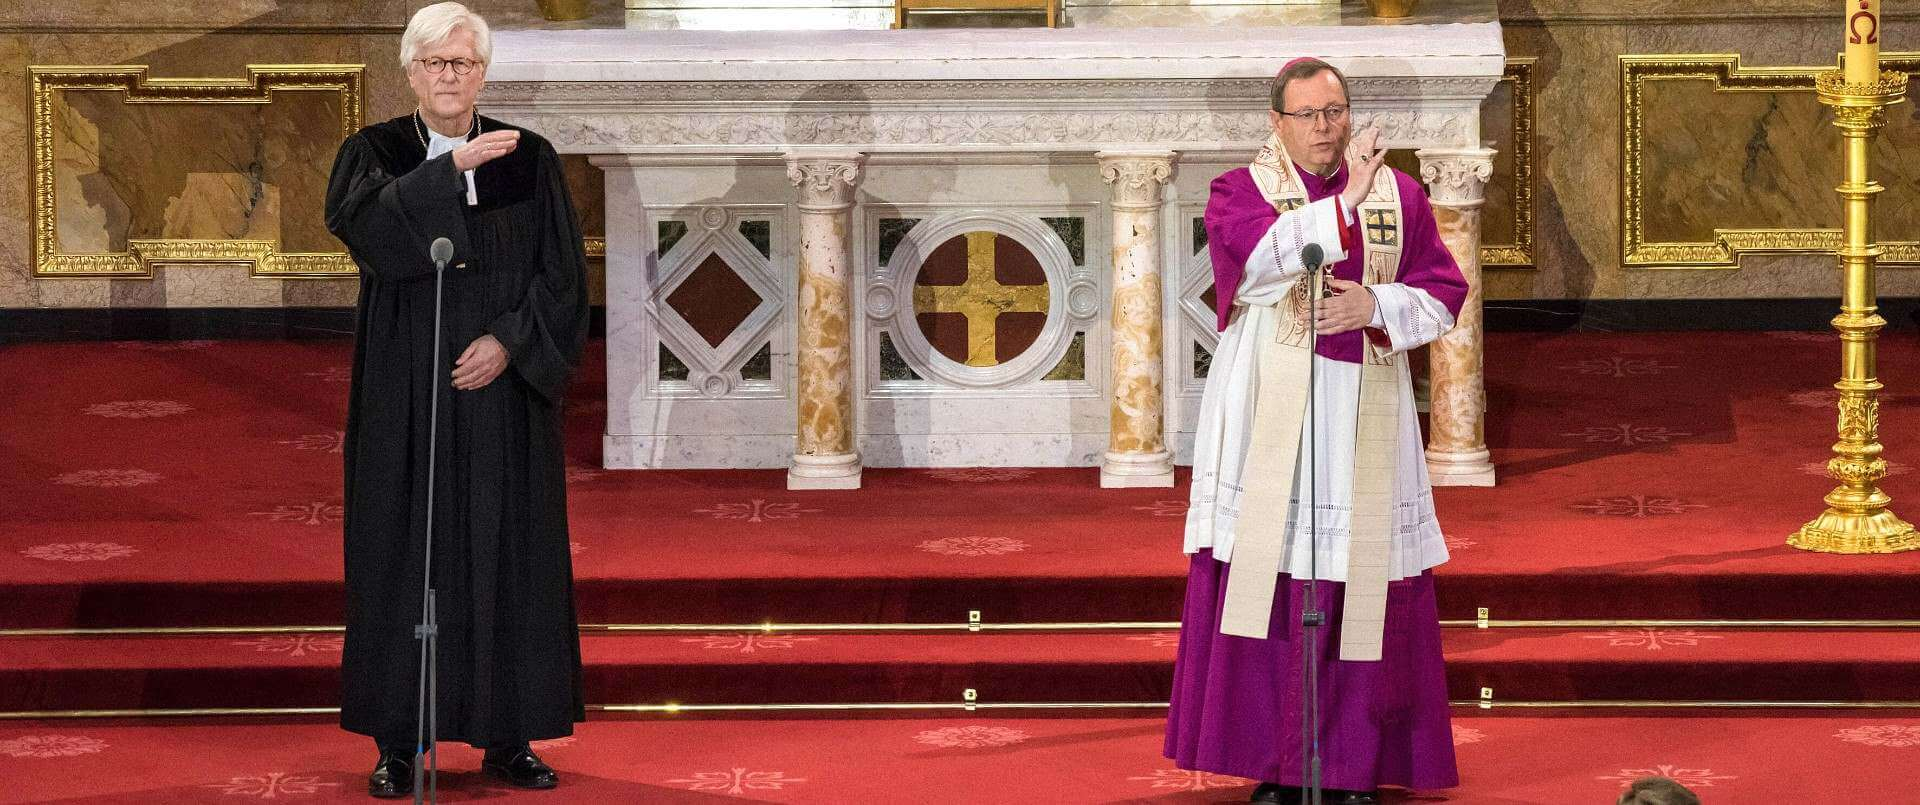 German church leaders recall end of WWII, urge commitment to peace | Archdiocese of Baltimore